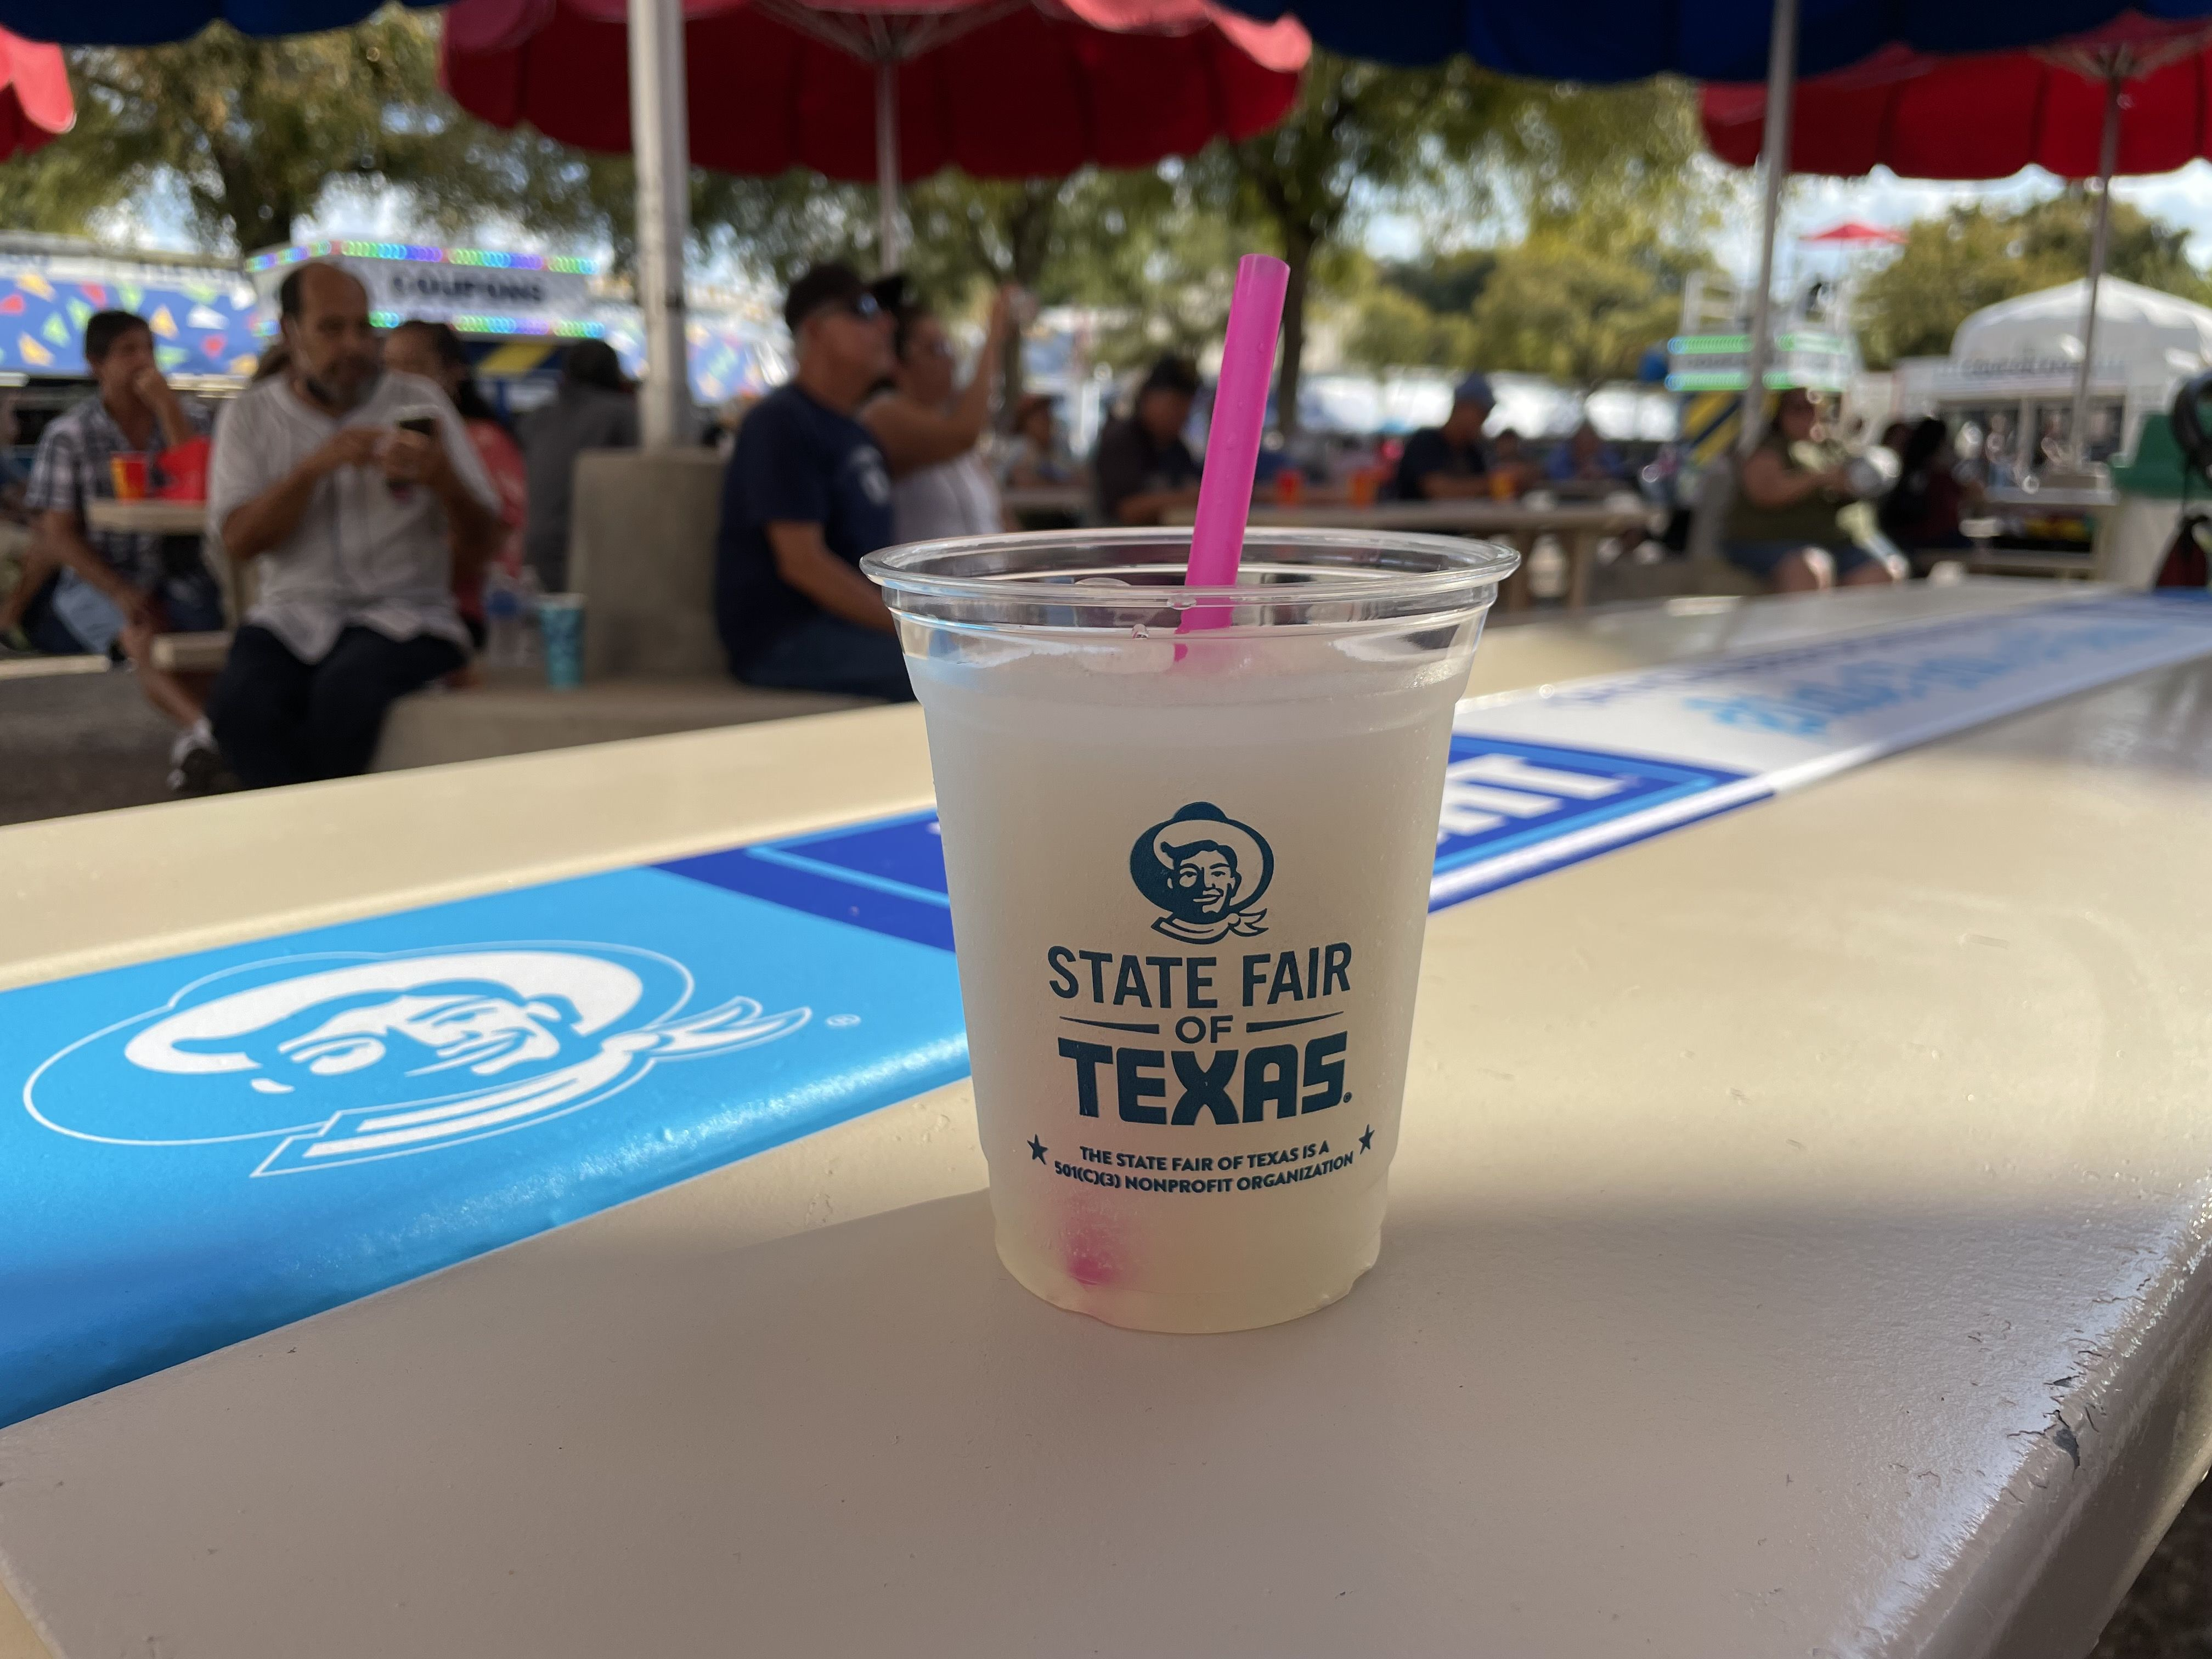 A plastic cup filled with a frozen yellow beverage and a pink straw in an outdoor setting.